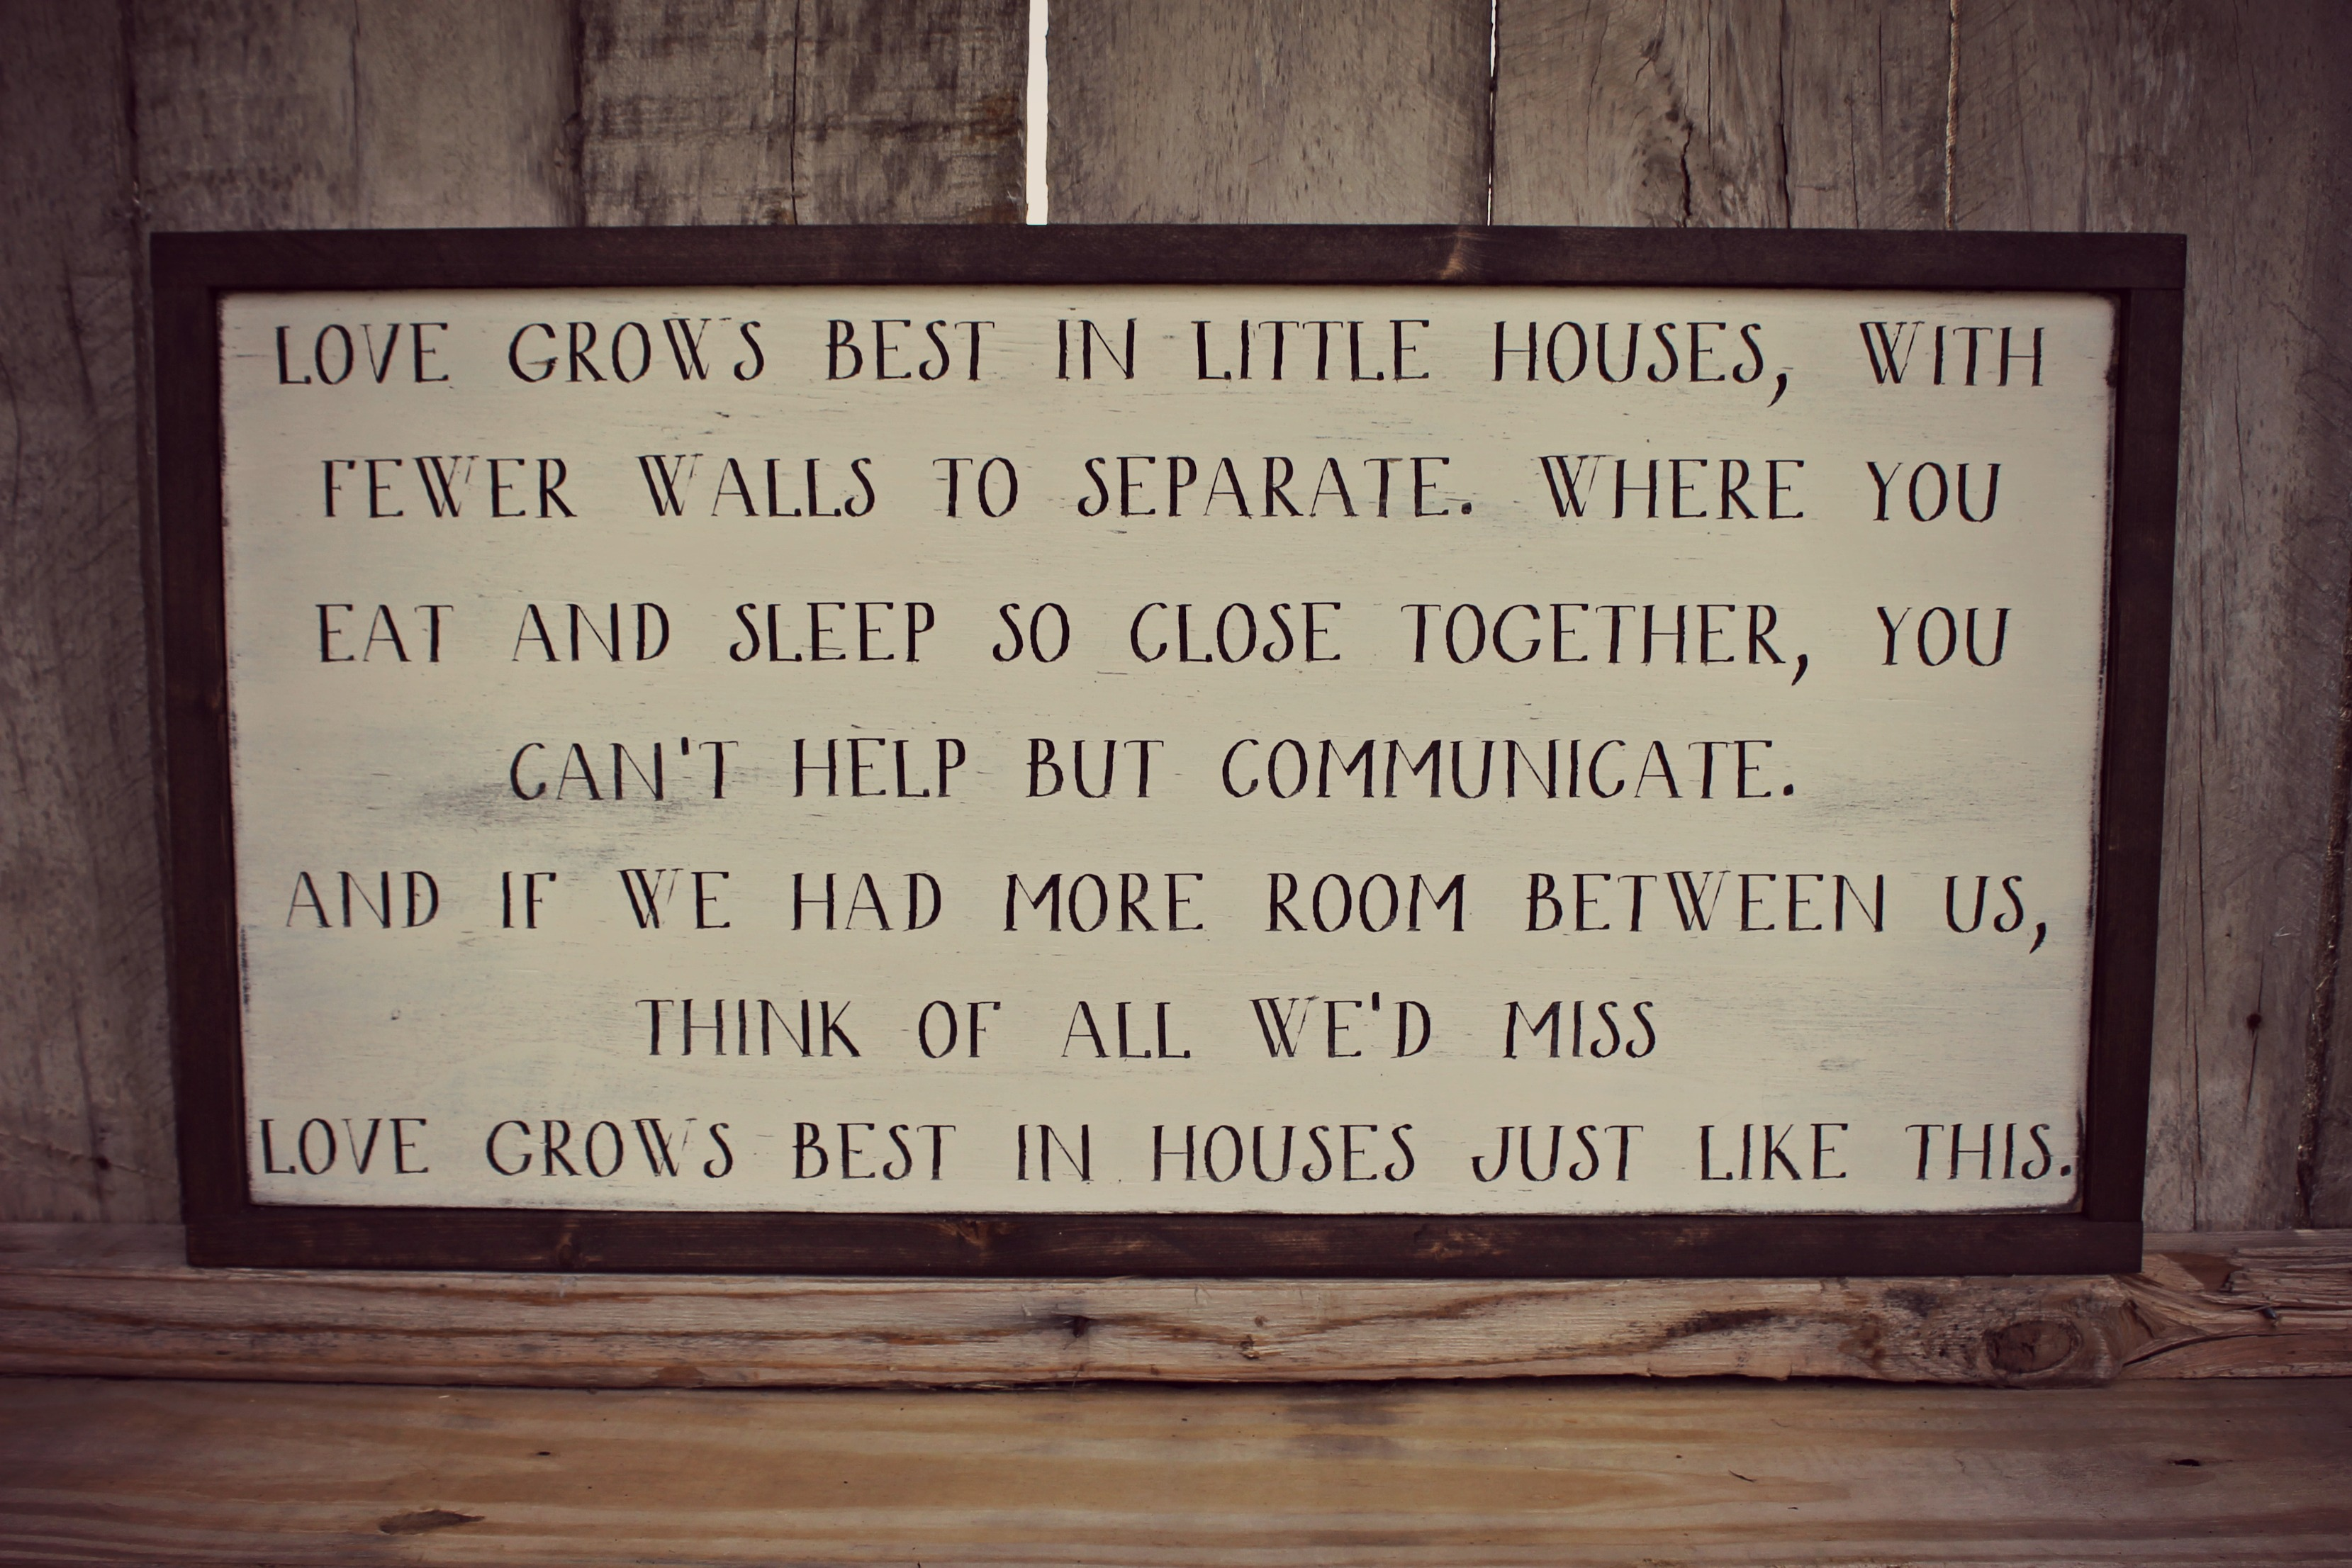 Love Grows Best 12x24 Framed Sign Sold By Rustic Heart Goods On